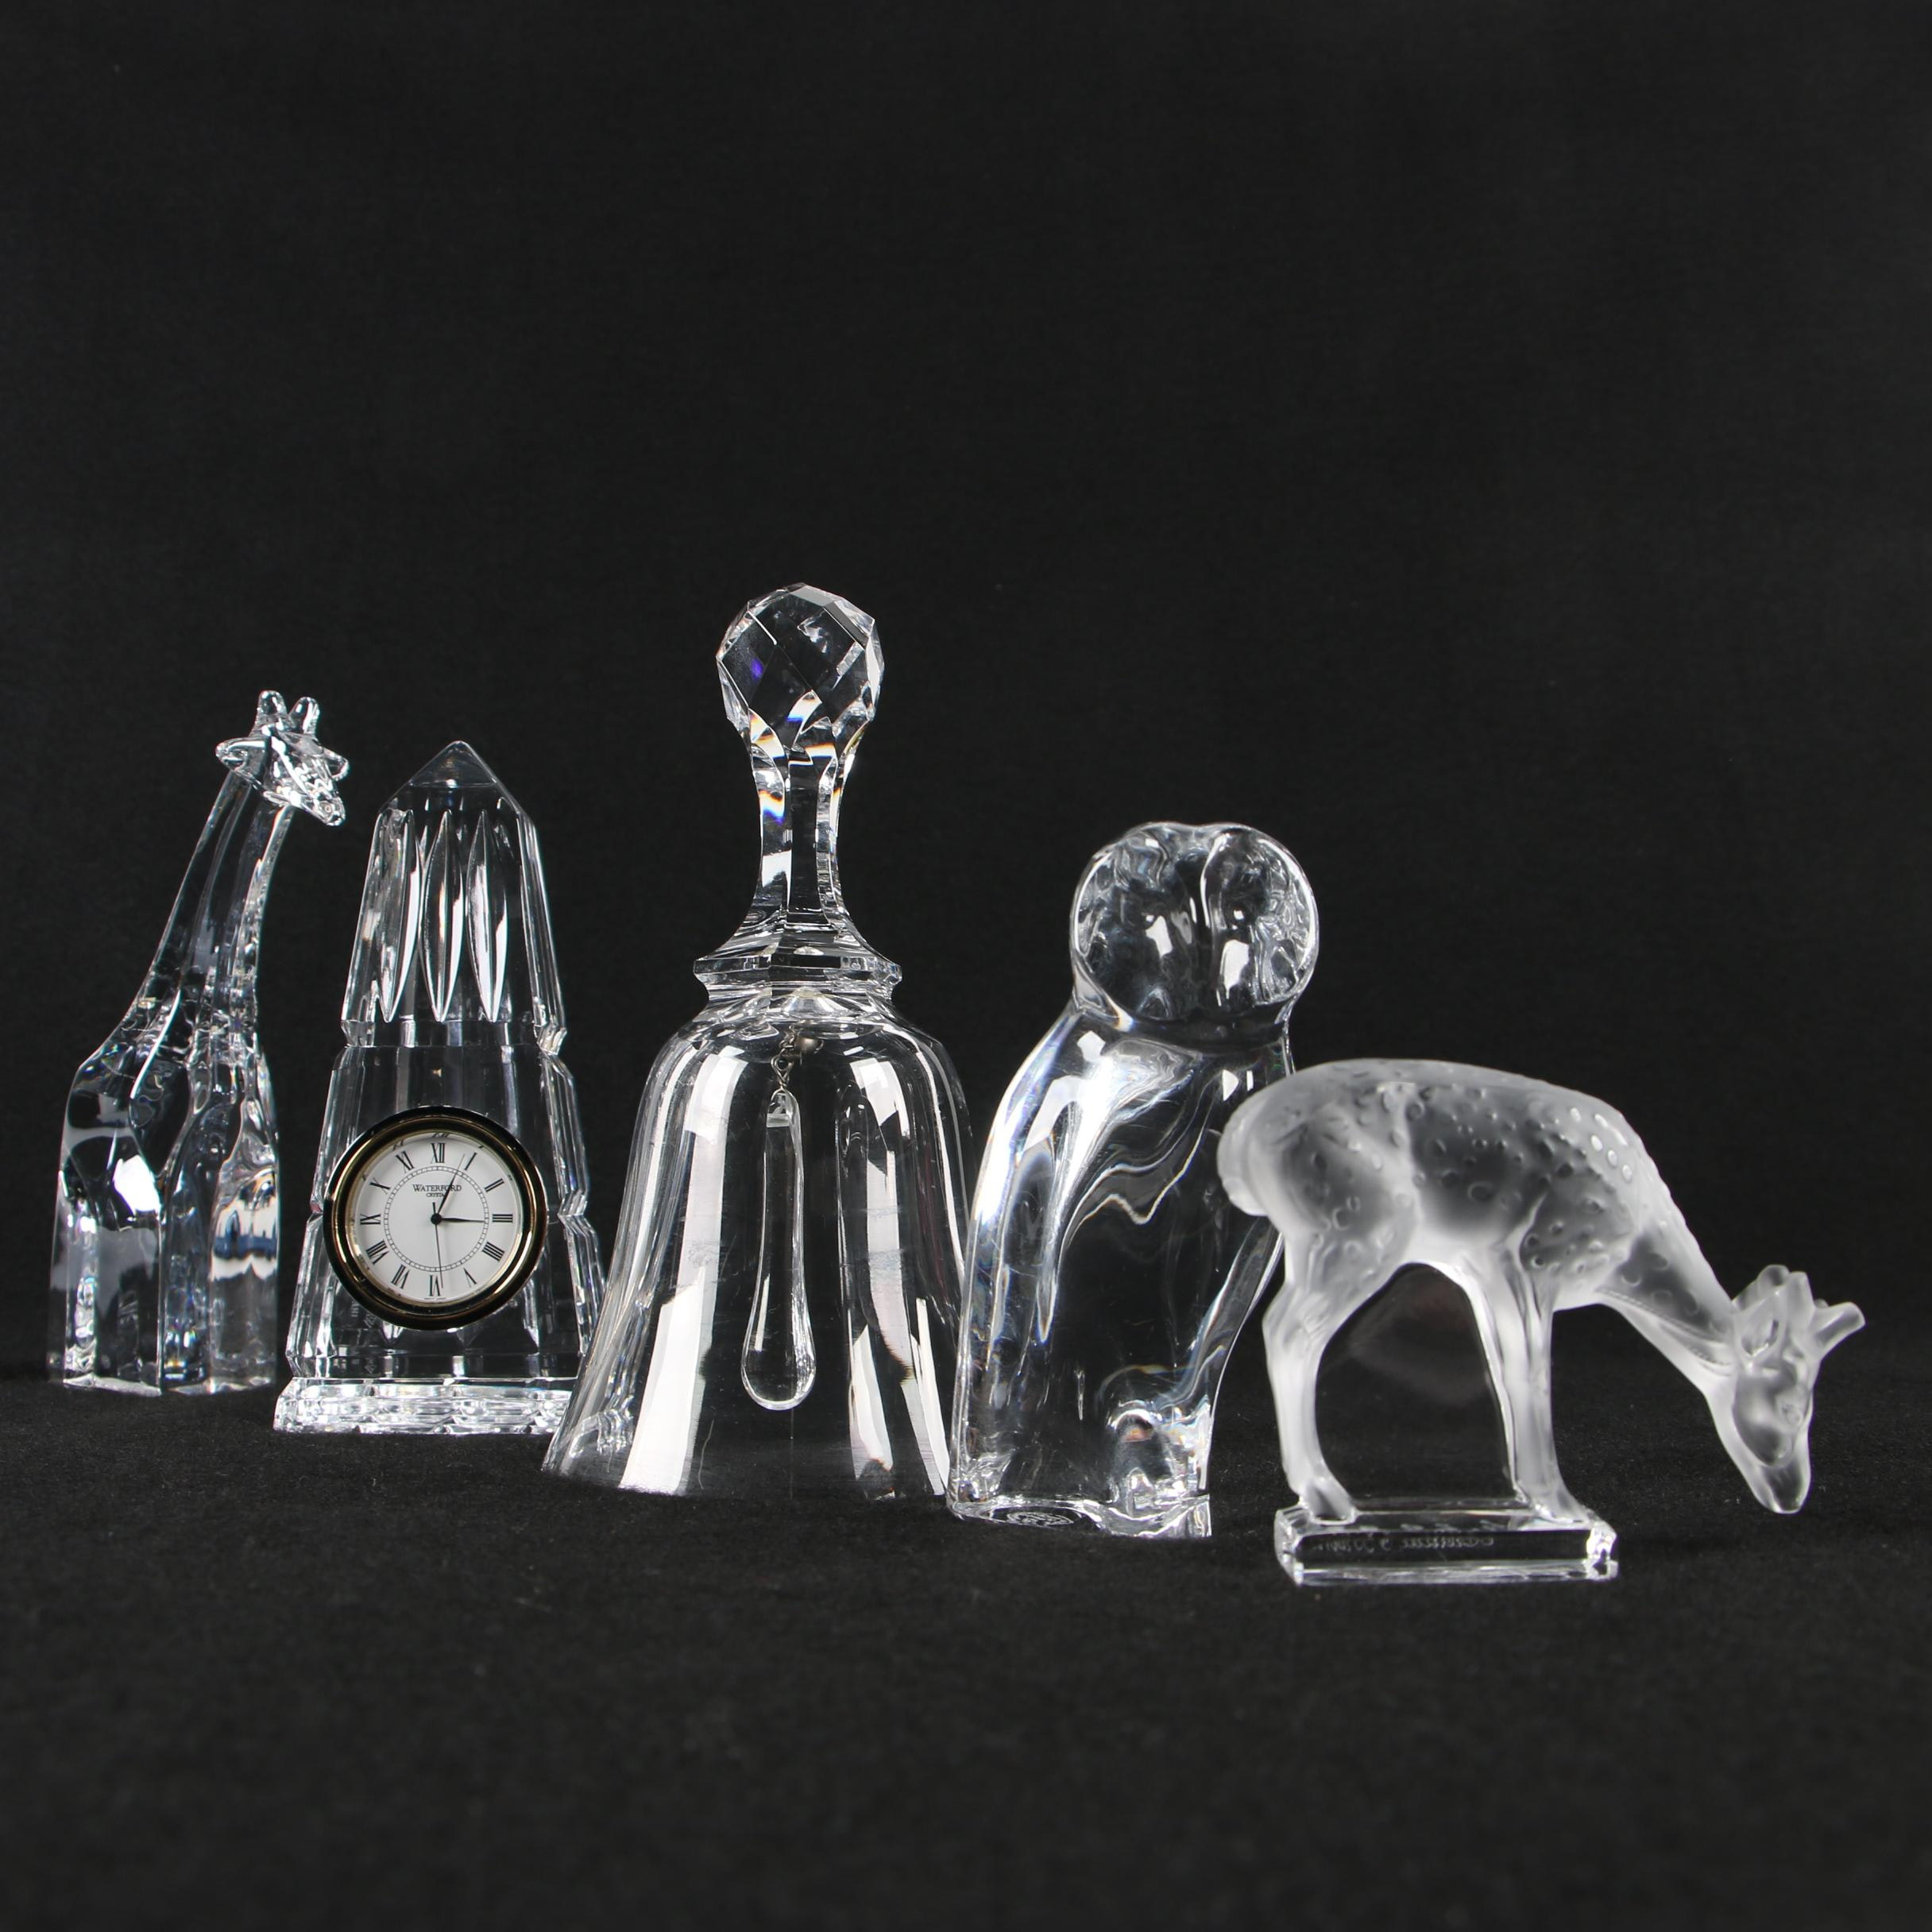 Lalique Deer, Orrefors Giraffe, Baccarat Owl and Bell, with Waterford Desk Clock